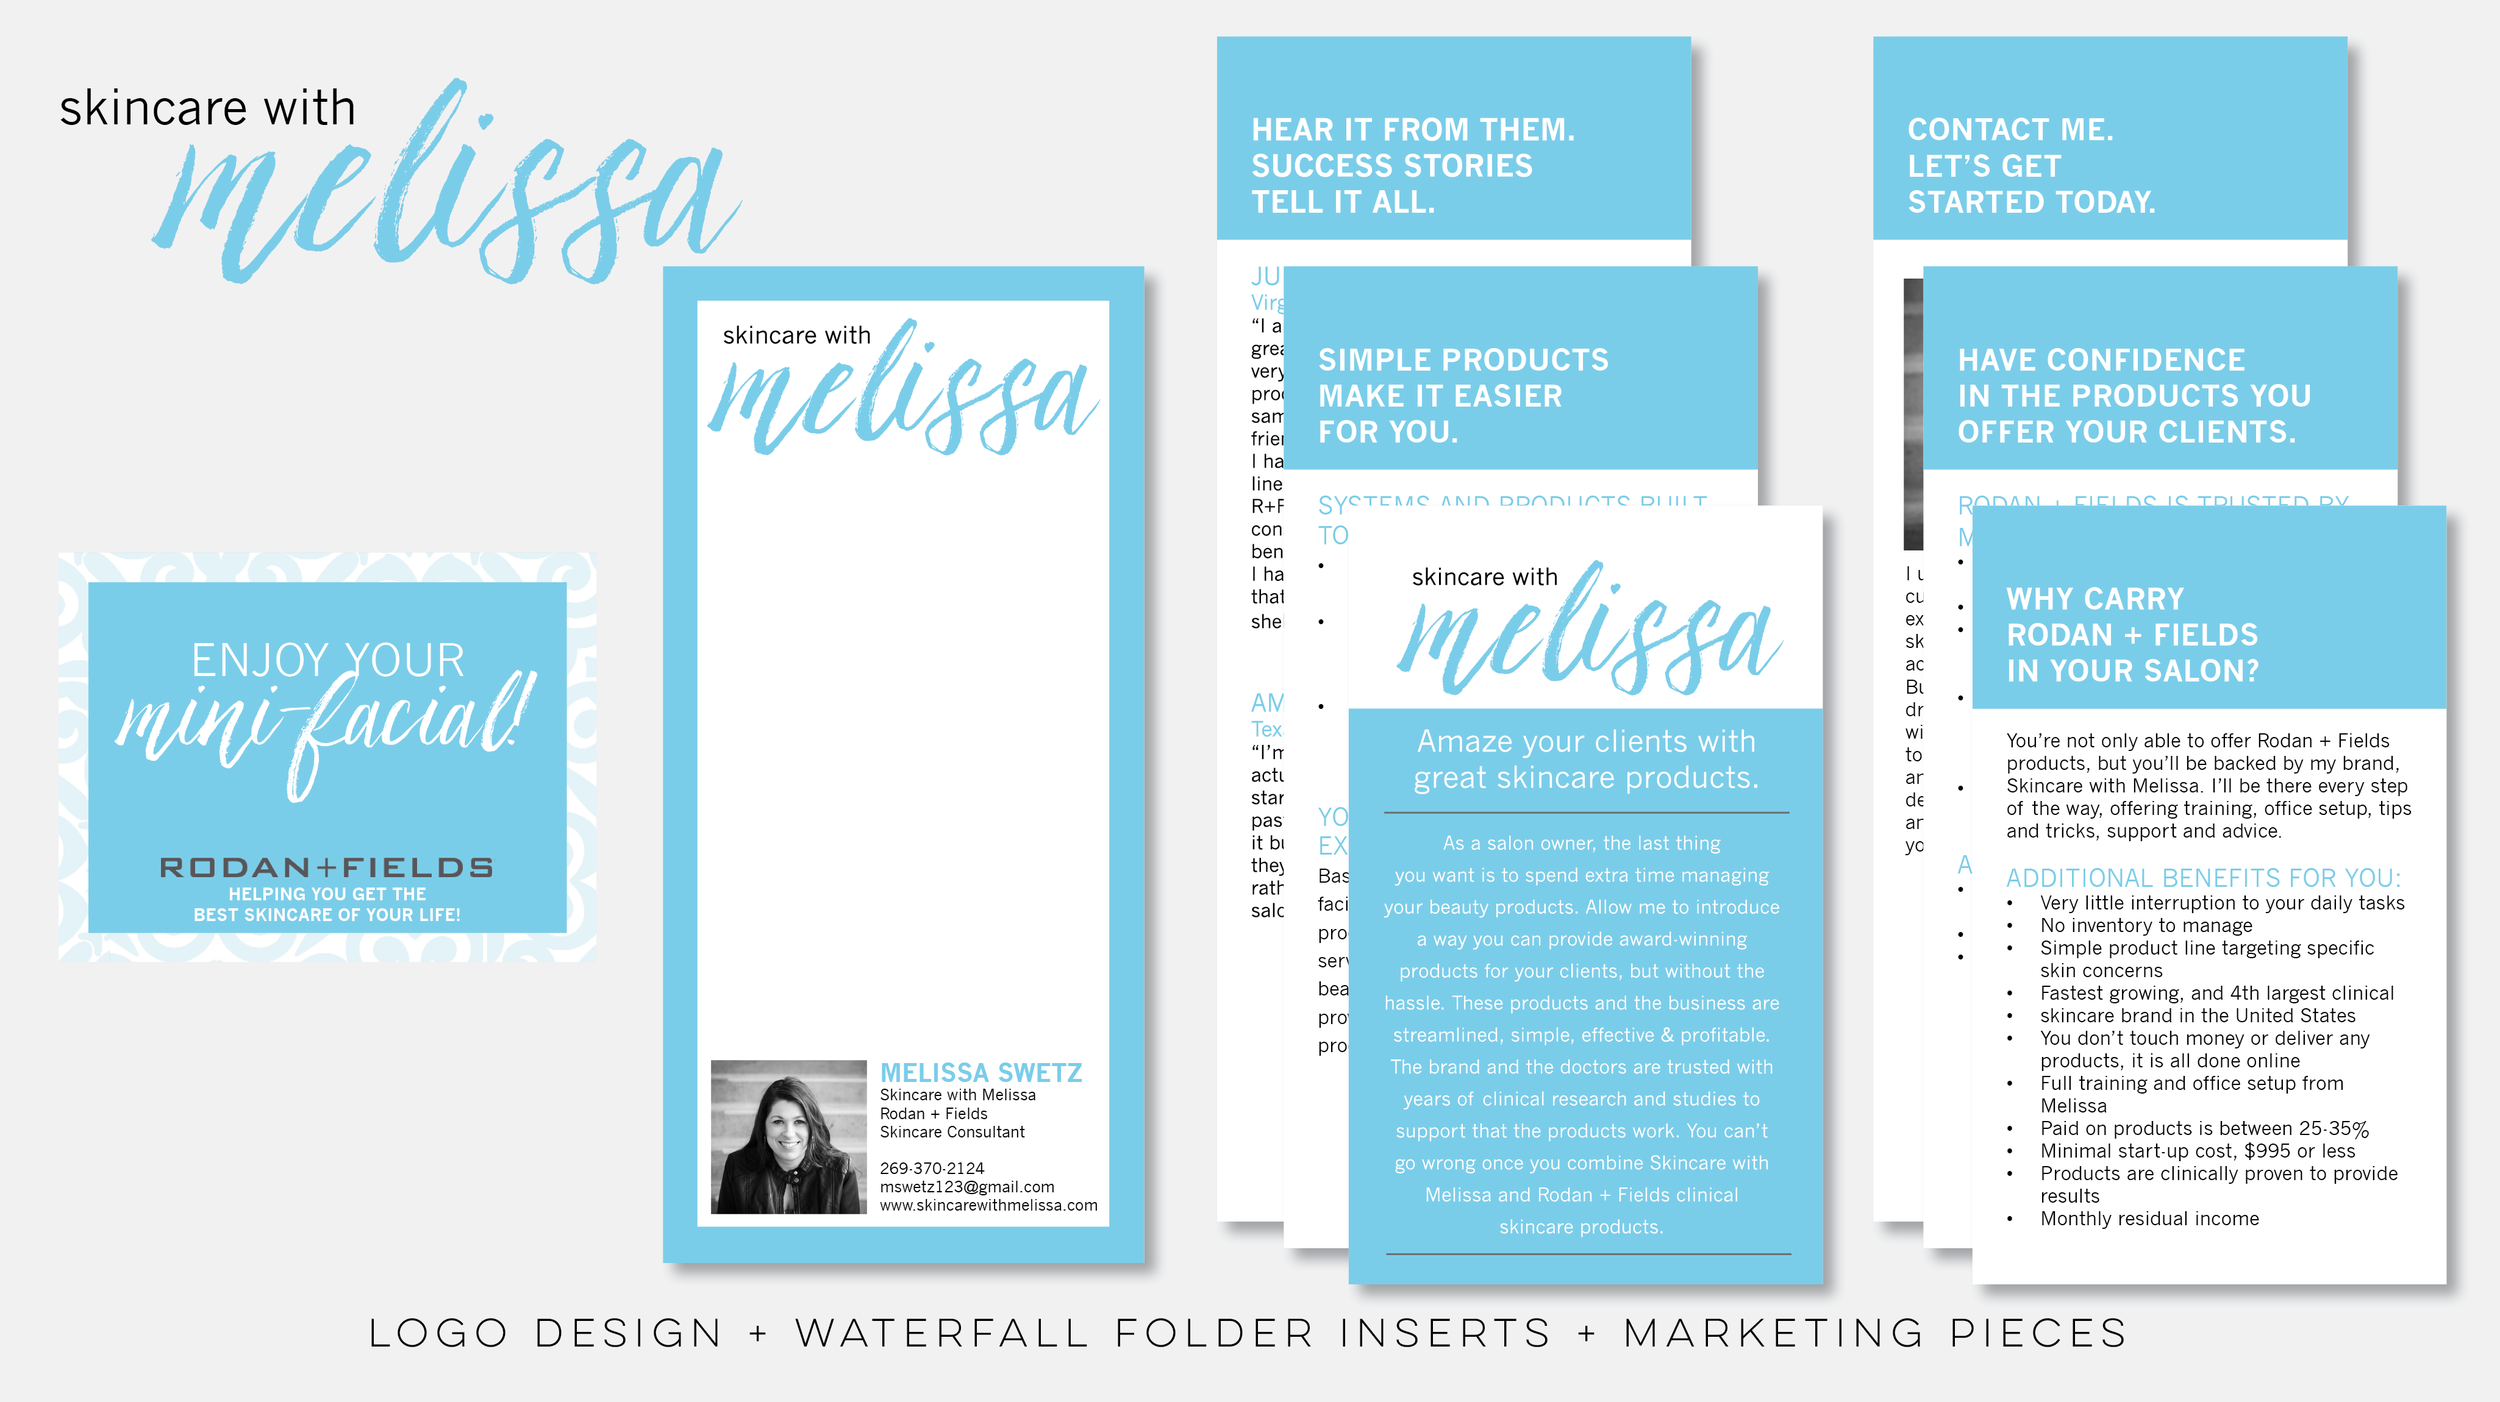 Skincare with Melissa_logo+waterfall.png